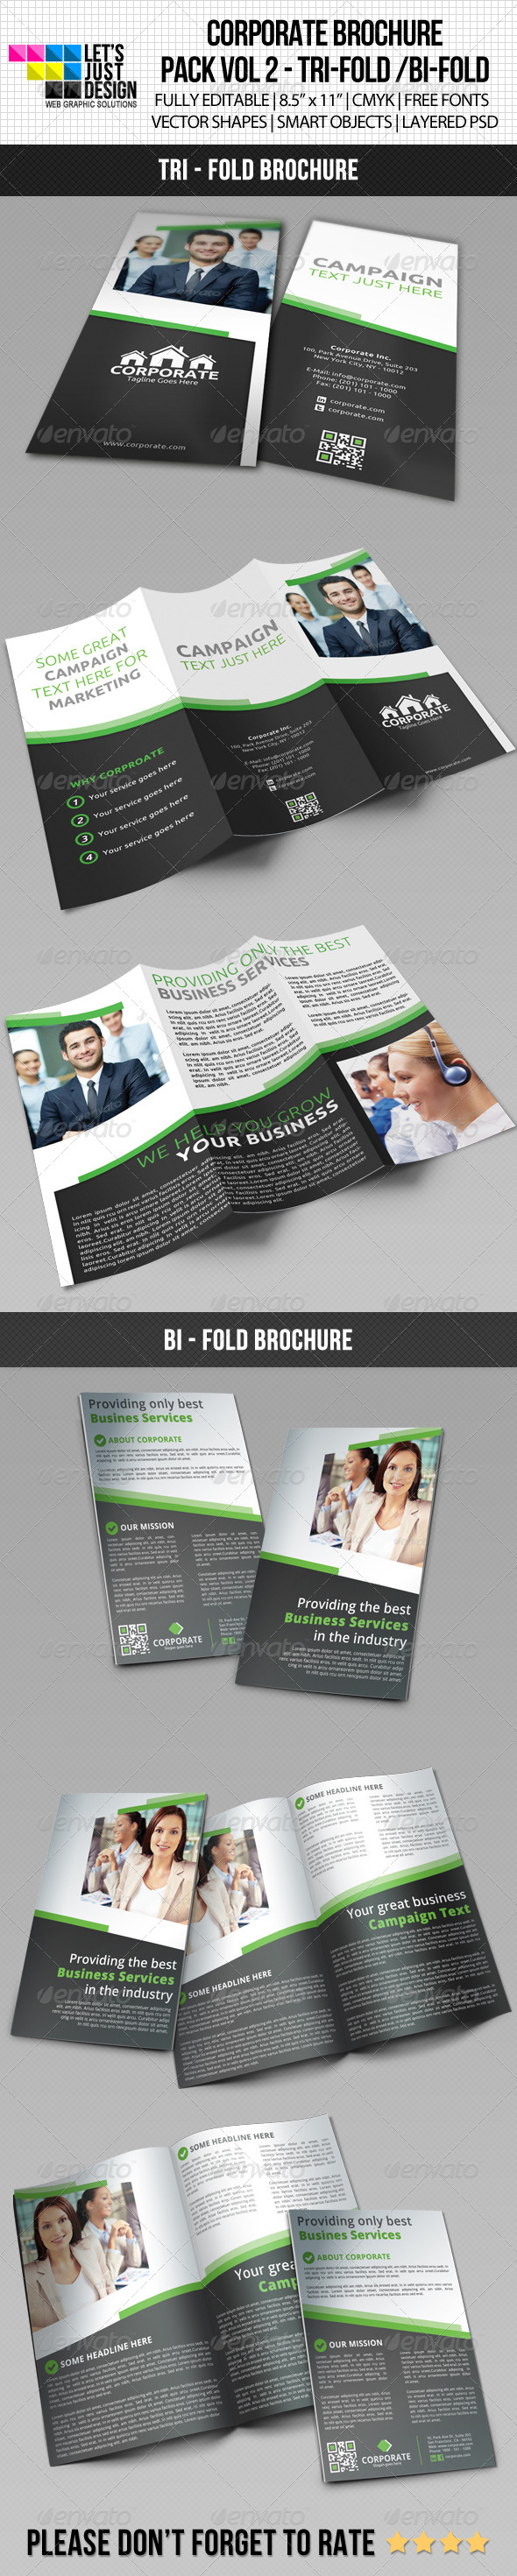 GraphicRiver Corporate Brochure Pack Vol 2 5897412